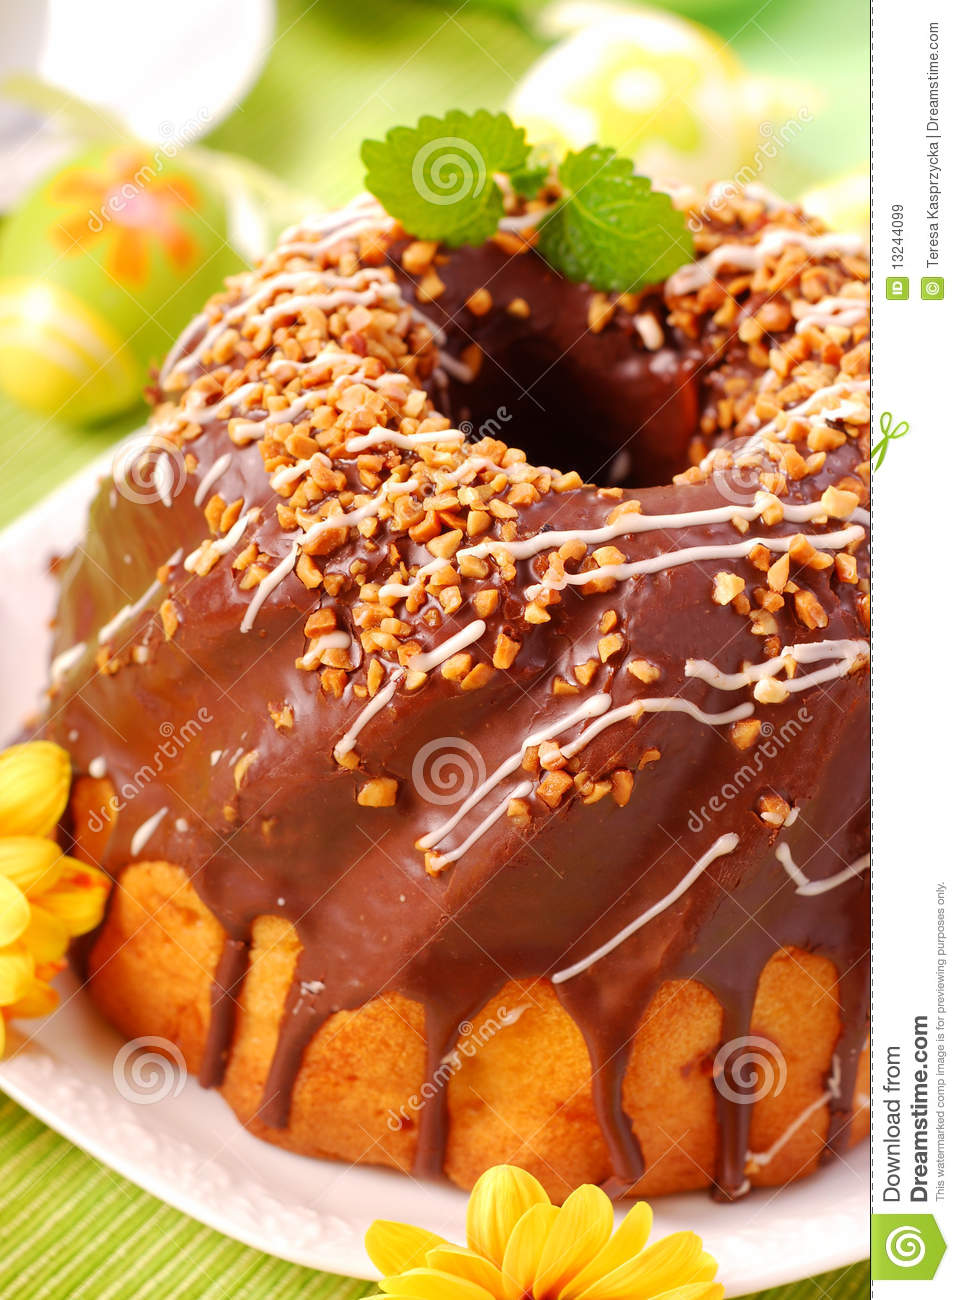 Chocolate Ring Cake For Easter Royalty Free Stock Images - Image ...